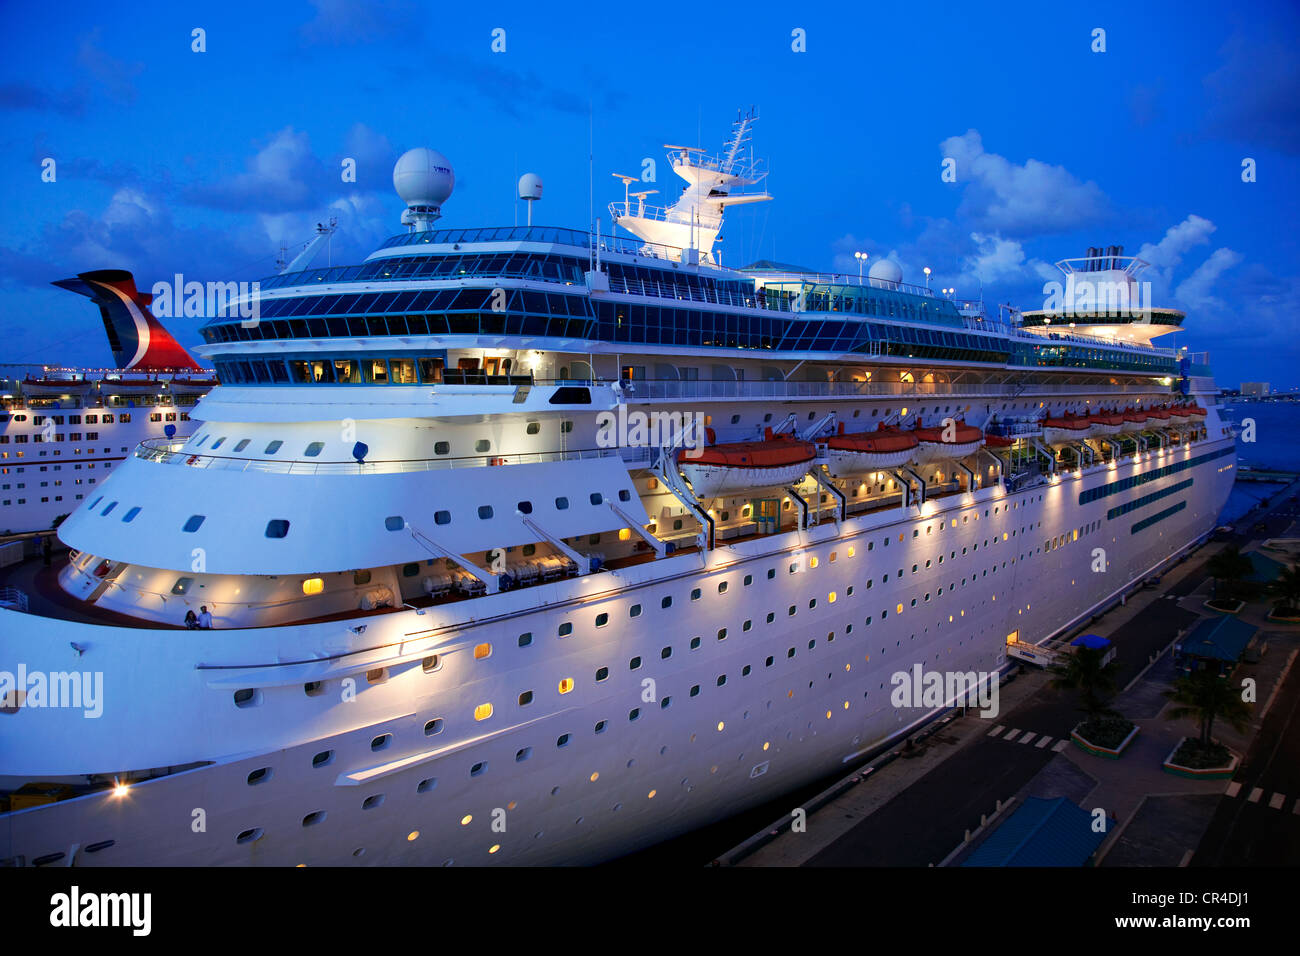 Bahamas, New Providence, Nassau, cruise ships during a stop over - Stock Image